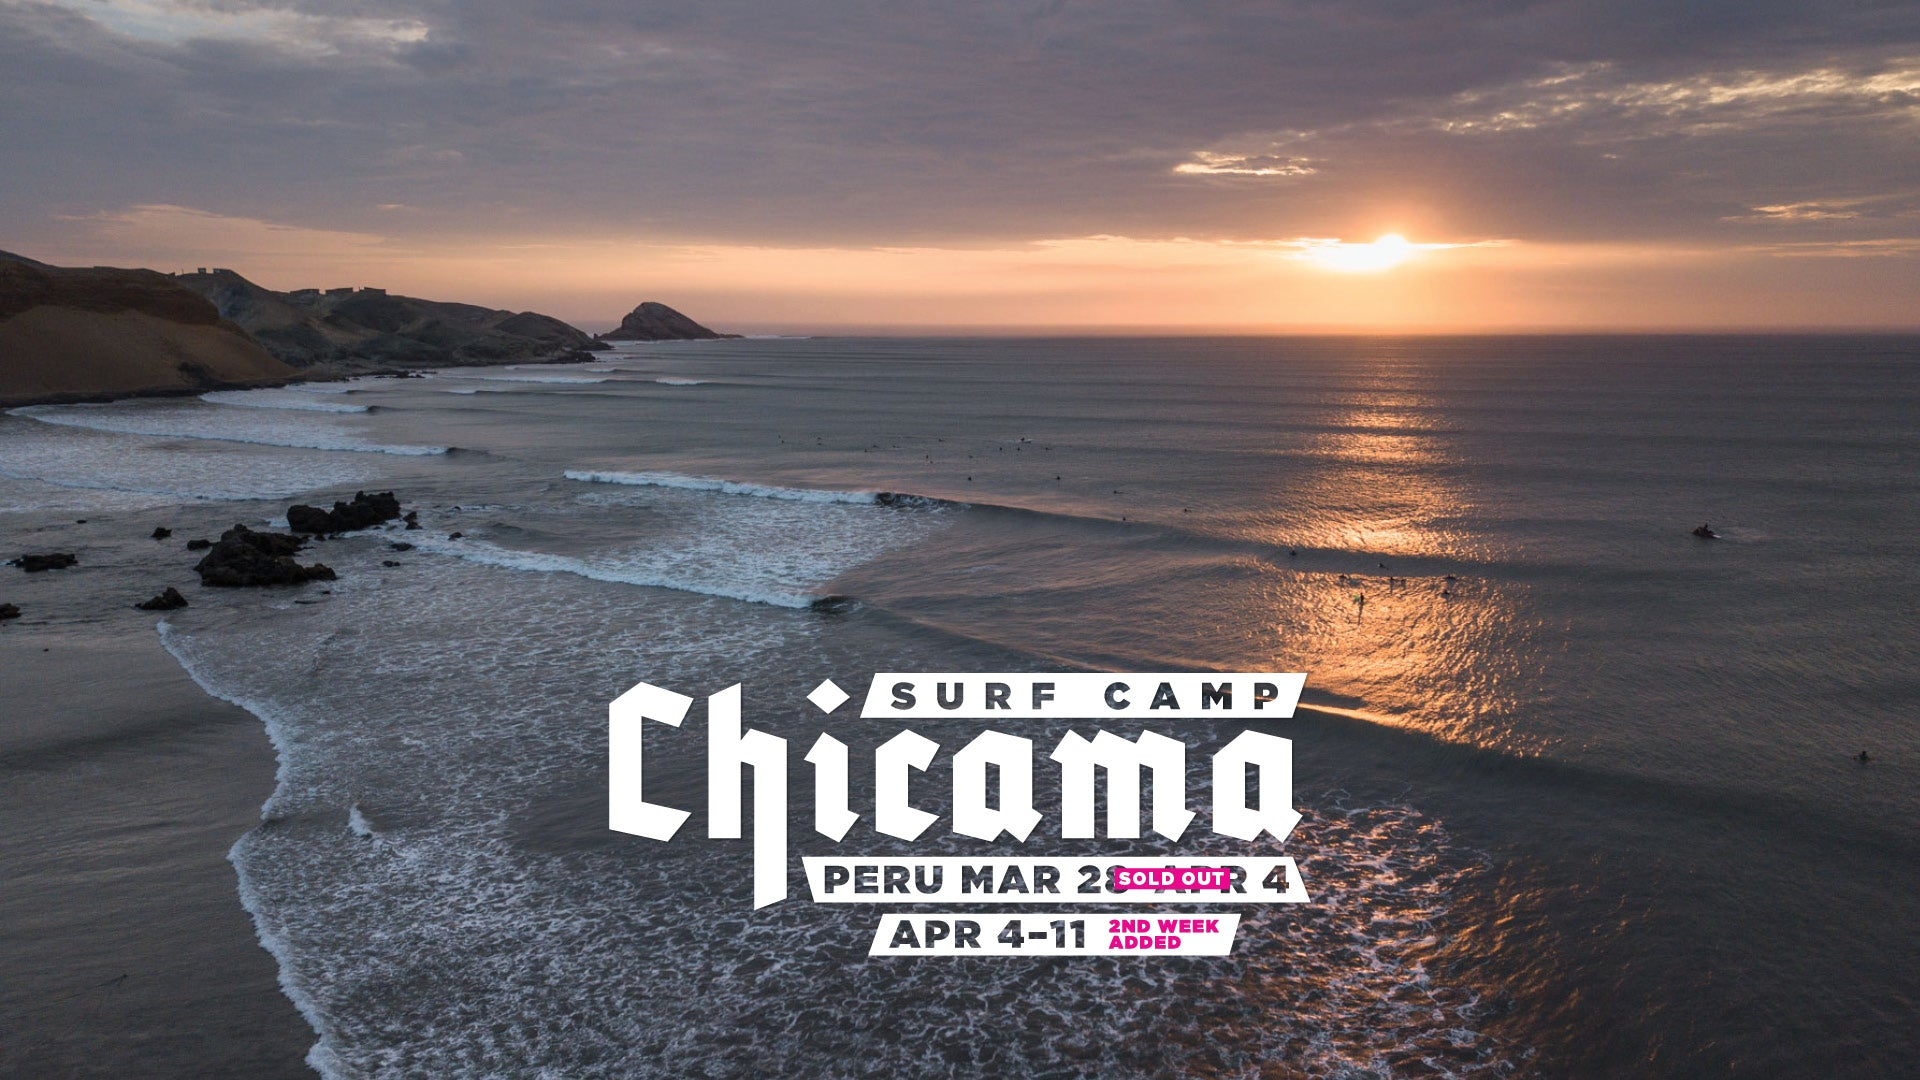 Chicama Surf Camp Surf the Greats Surf Trip